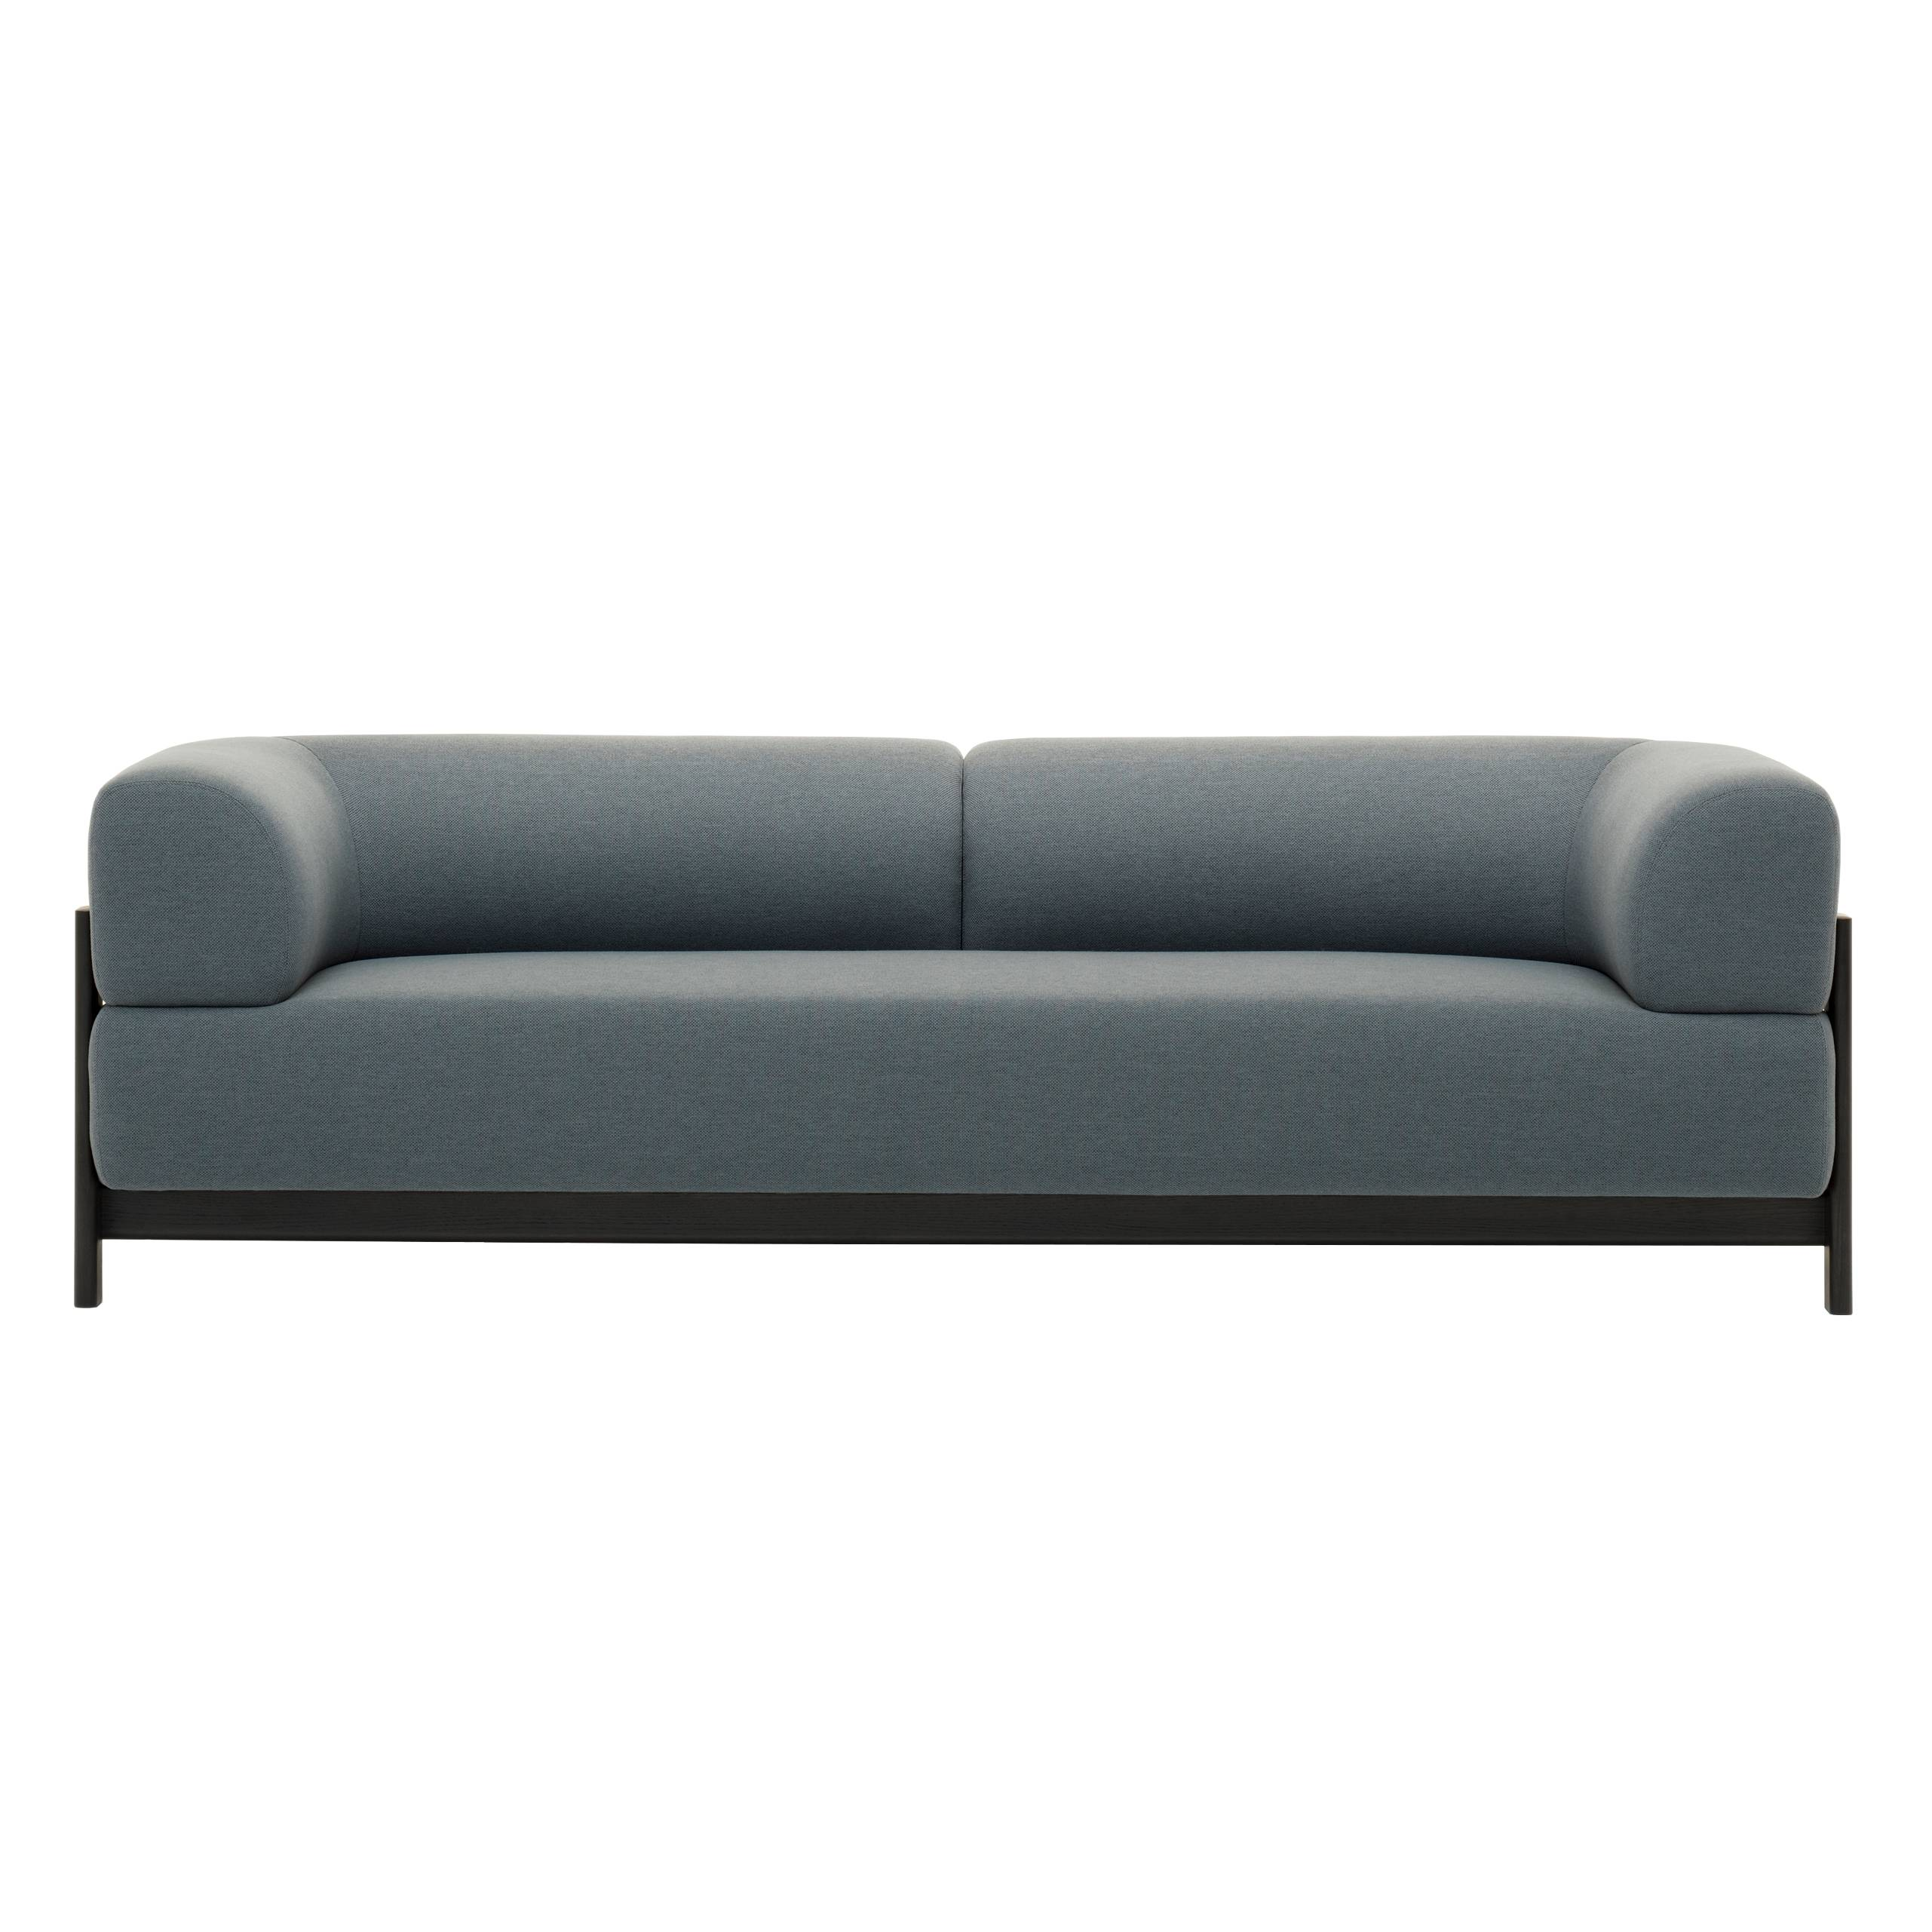 Elephant 3 Seater Sofa: Black Frame